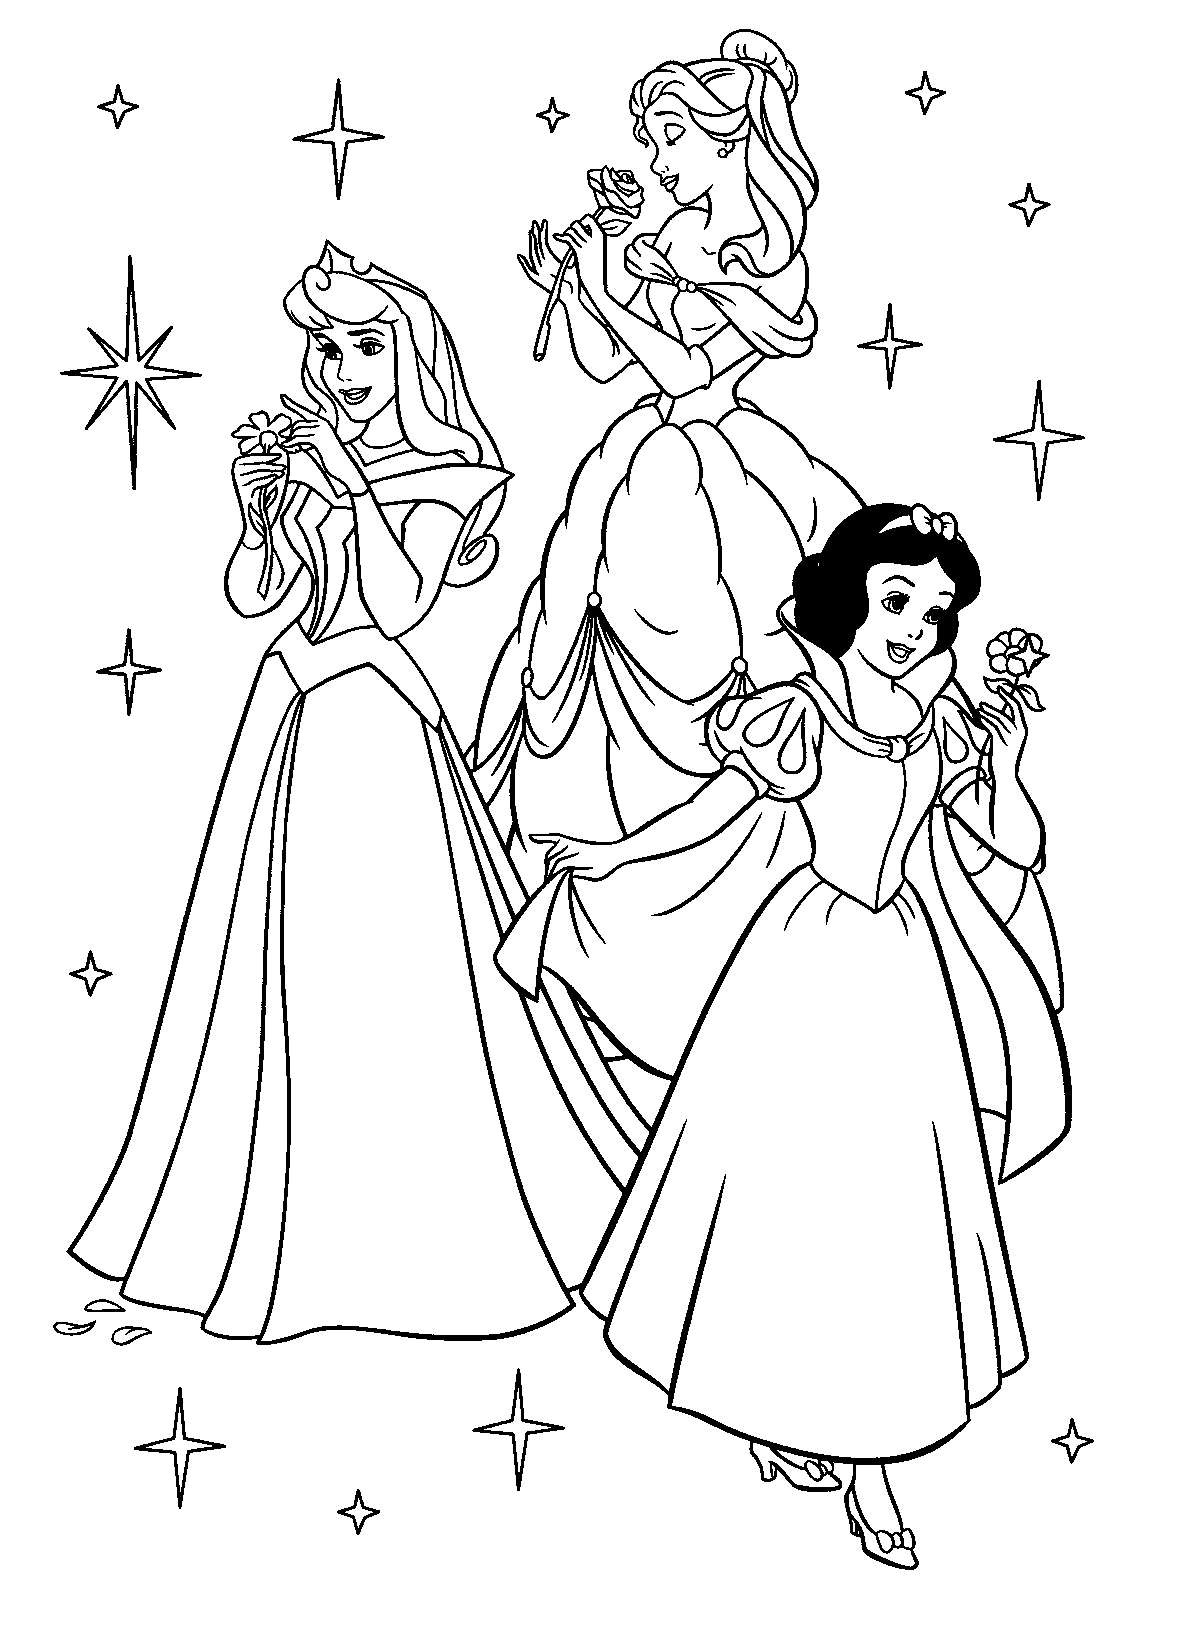 disney princess coloring pages - Disney Princess Coloring Pages Free Printable